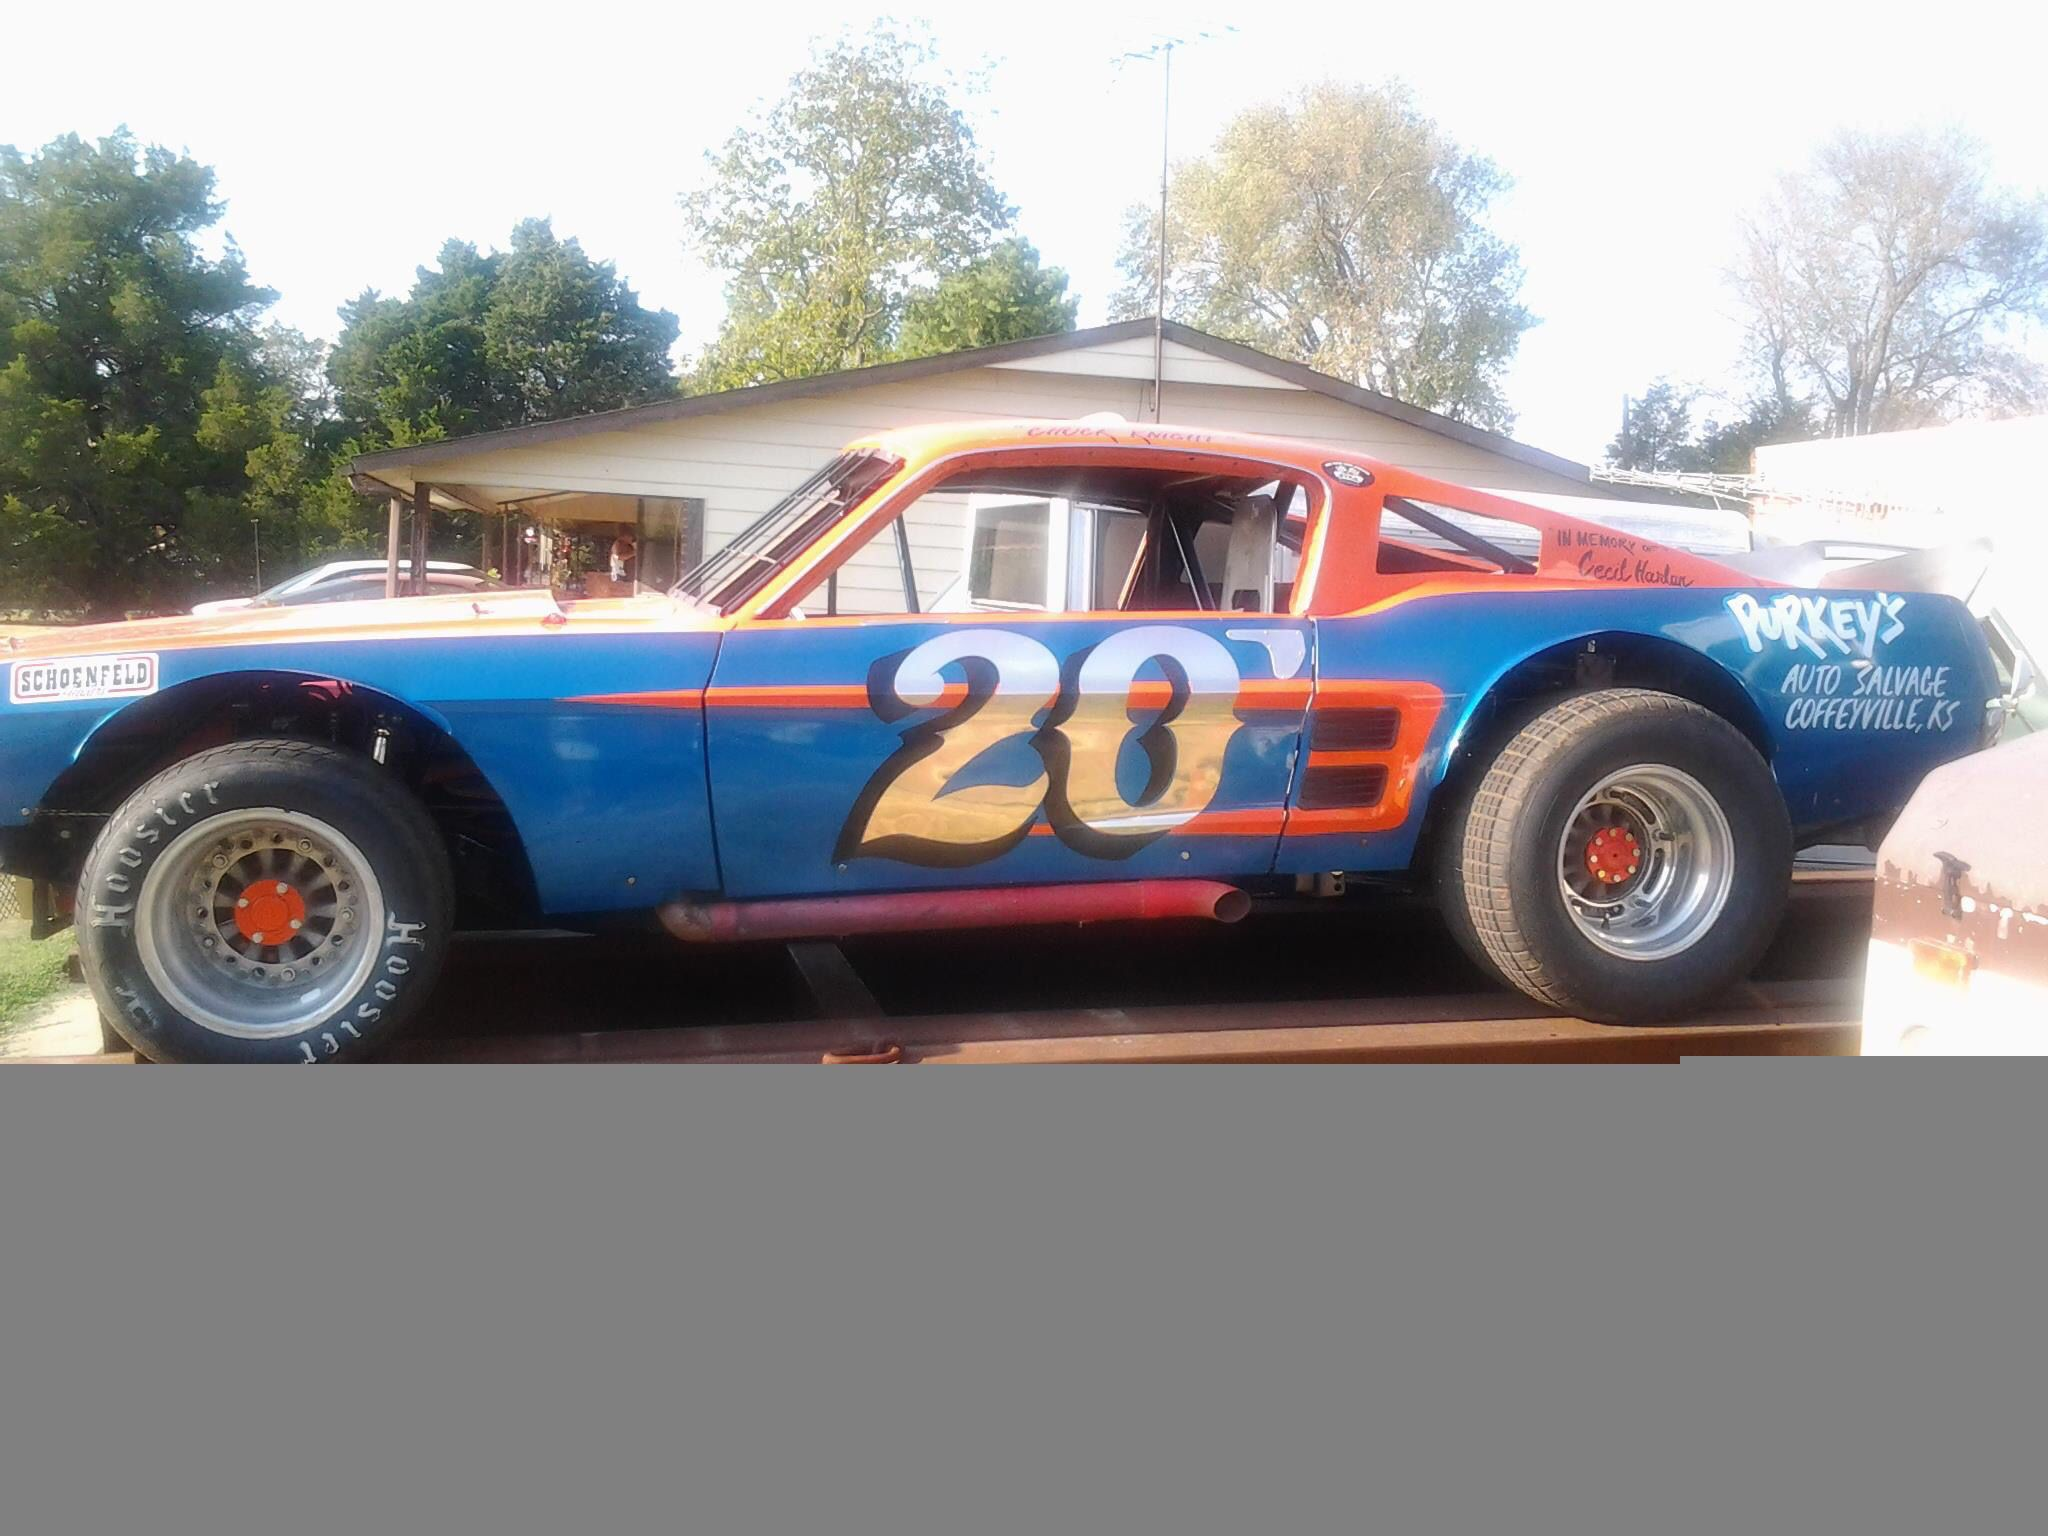 Pin by Alan Braswell on Dirt track | Pinterest | Dirt track, Cars ...